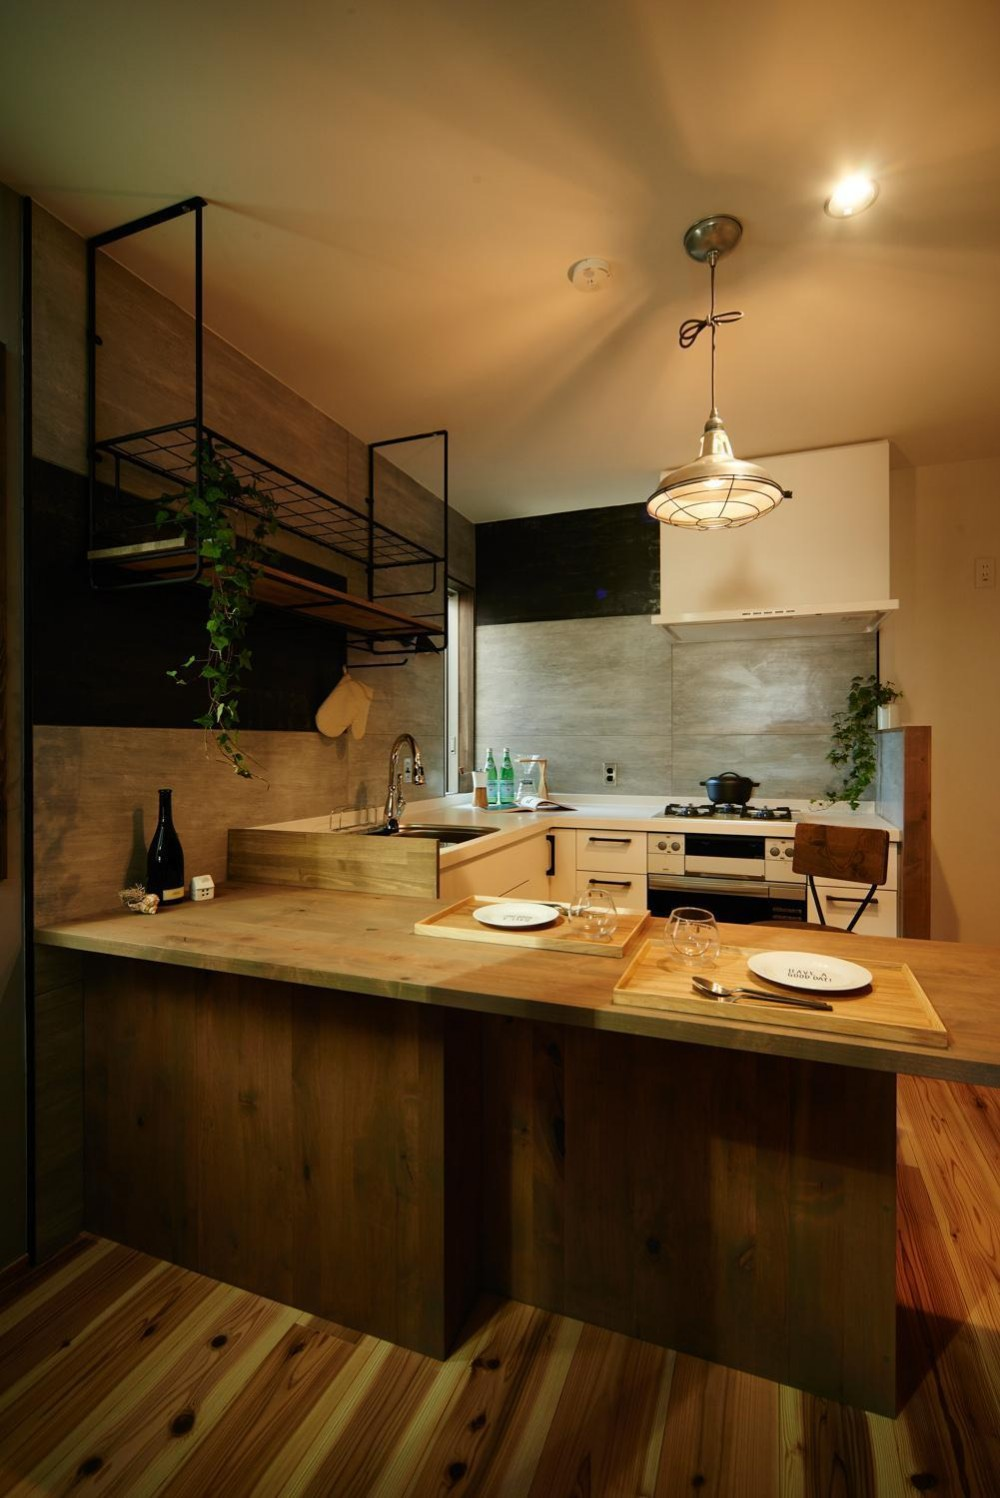 industrial style house (ダイニング・キッチン)